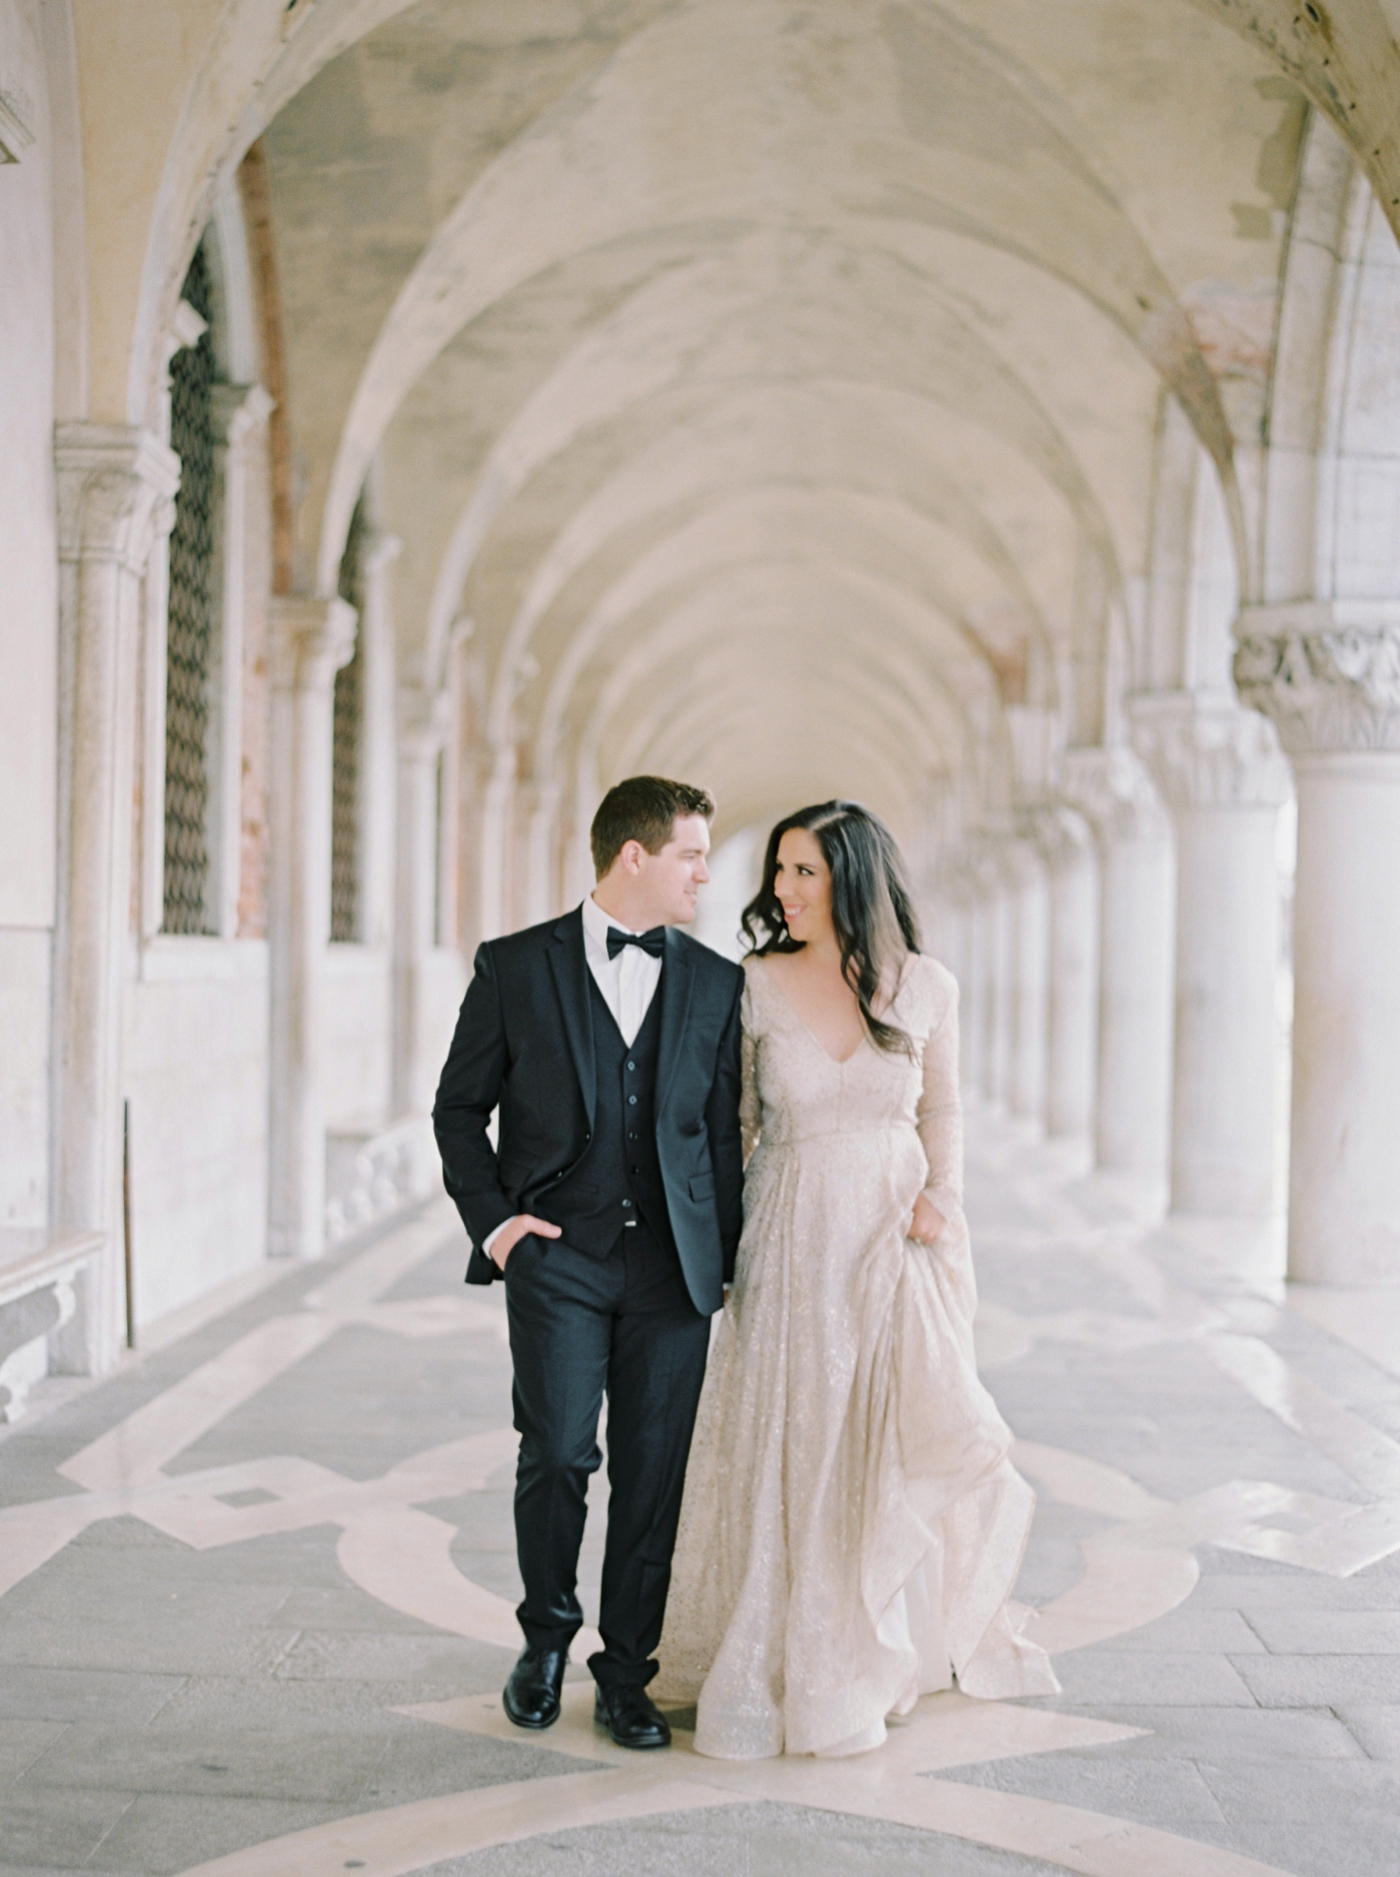 Venice italy wedding photographers | long sleeve wedding dress | italy vow renewal | justine milton fine art film photographer | bride and groom portraits